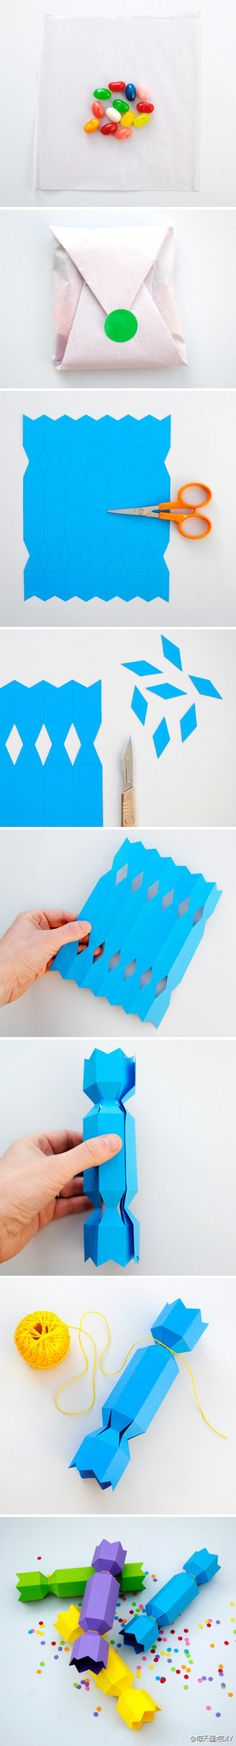 Great idea for kid's party!